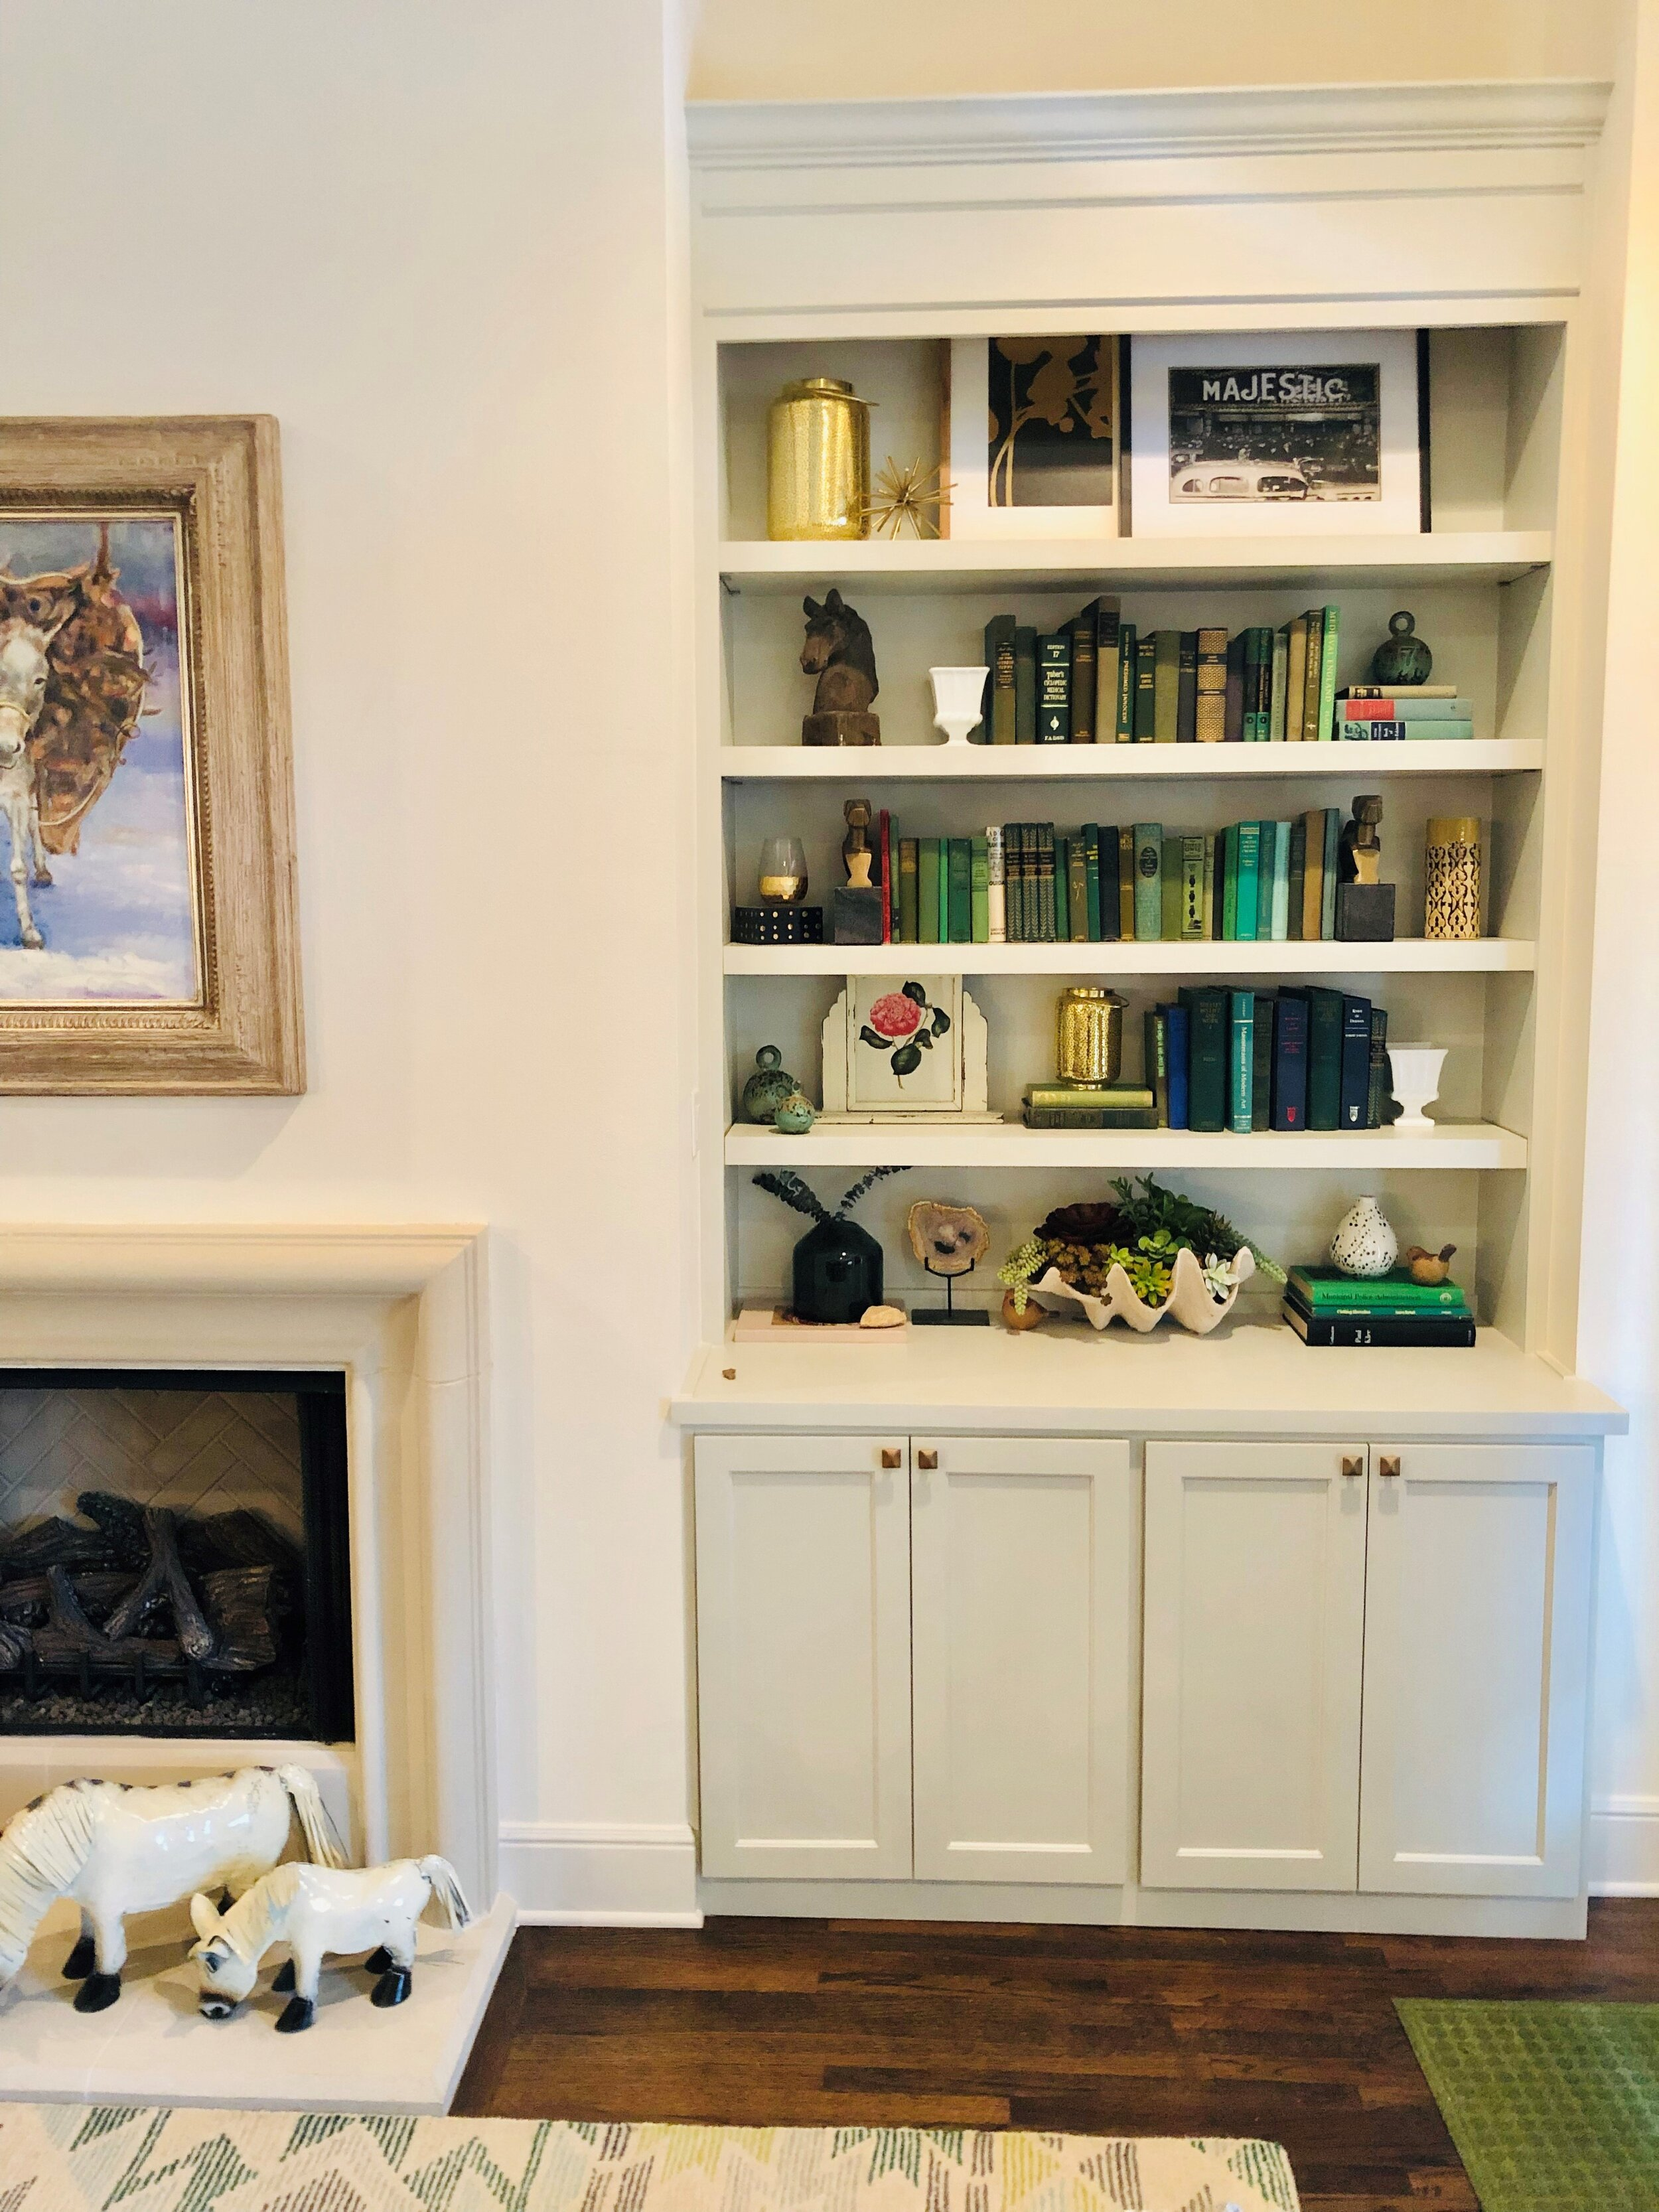 208 Summersby - Bookcases 2.jpg